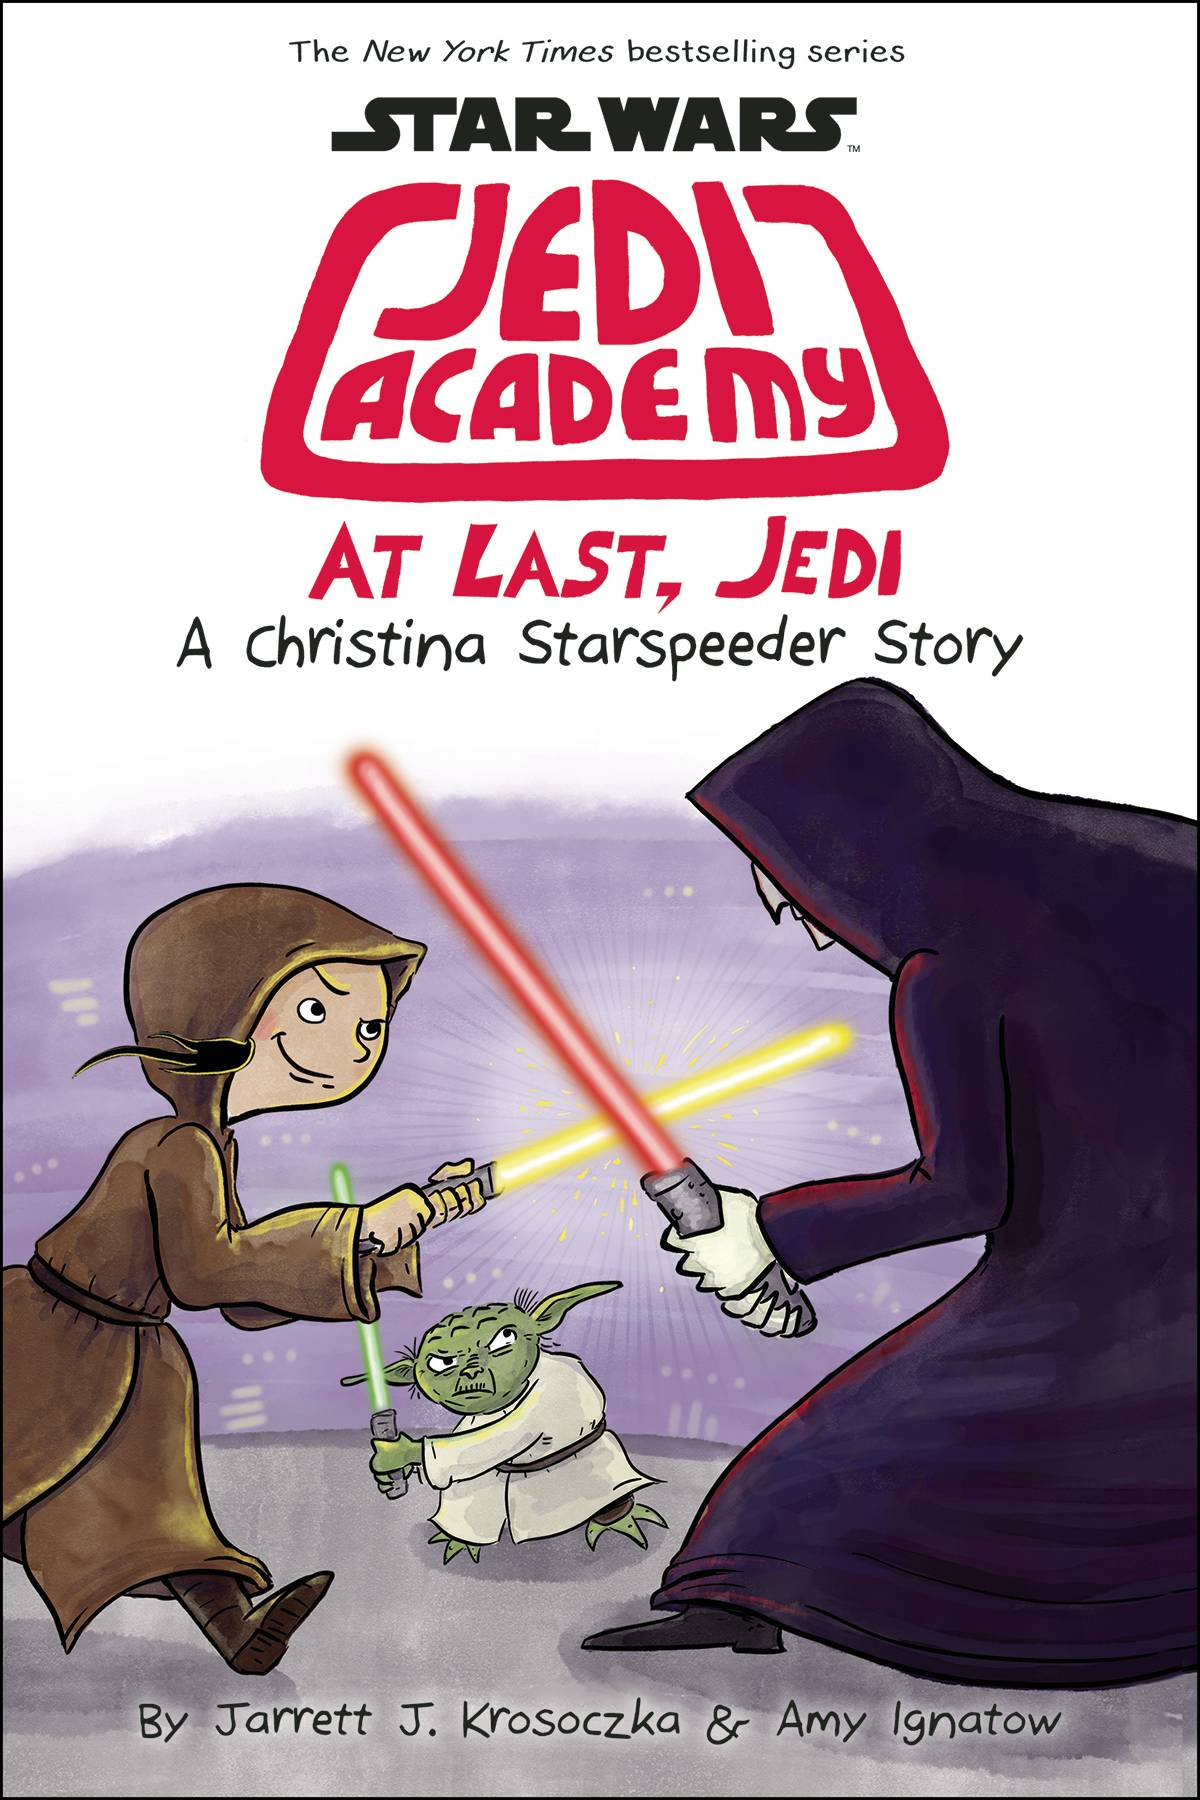 STAR WARS JEDI ACADEMY YR HC VOL 09 AT LAST JEDI